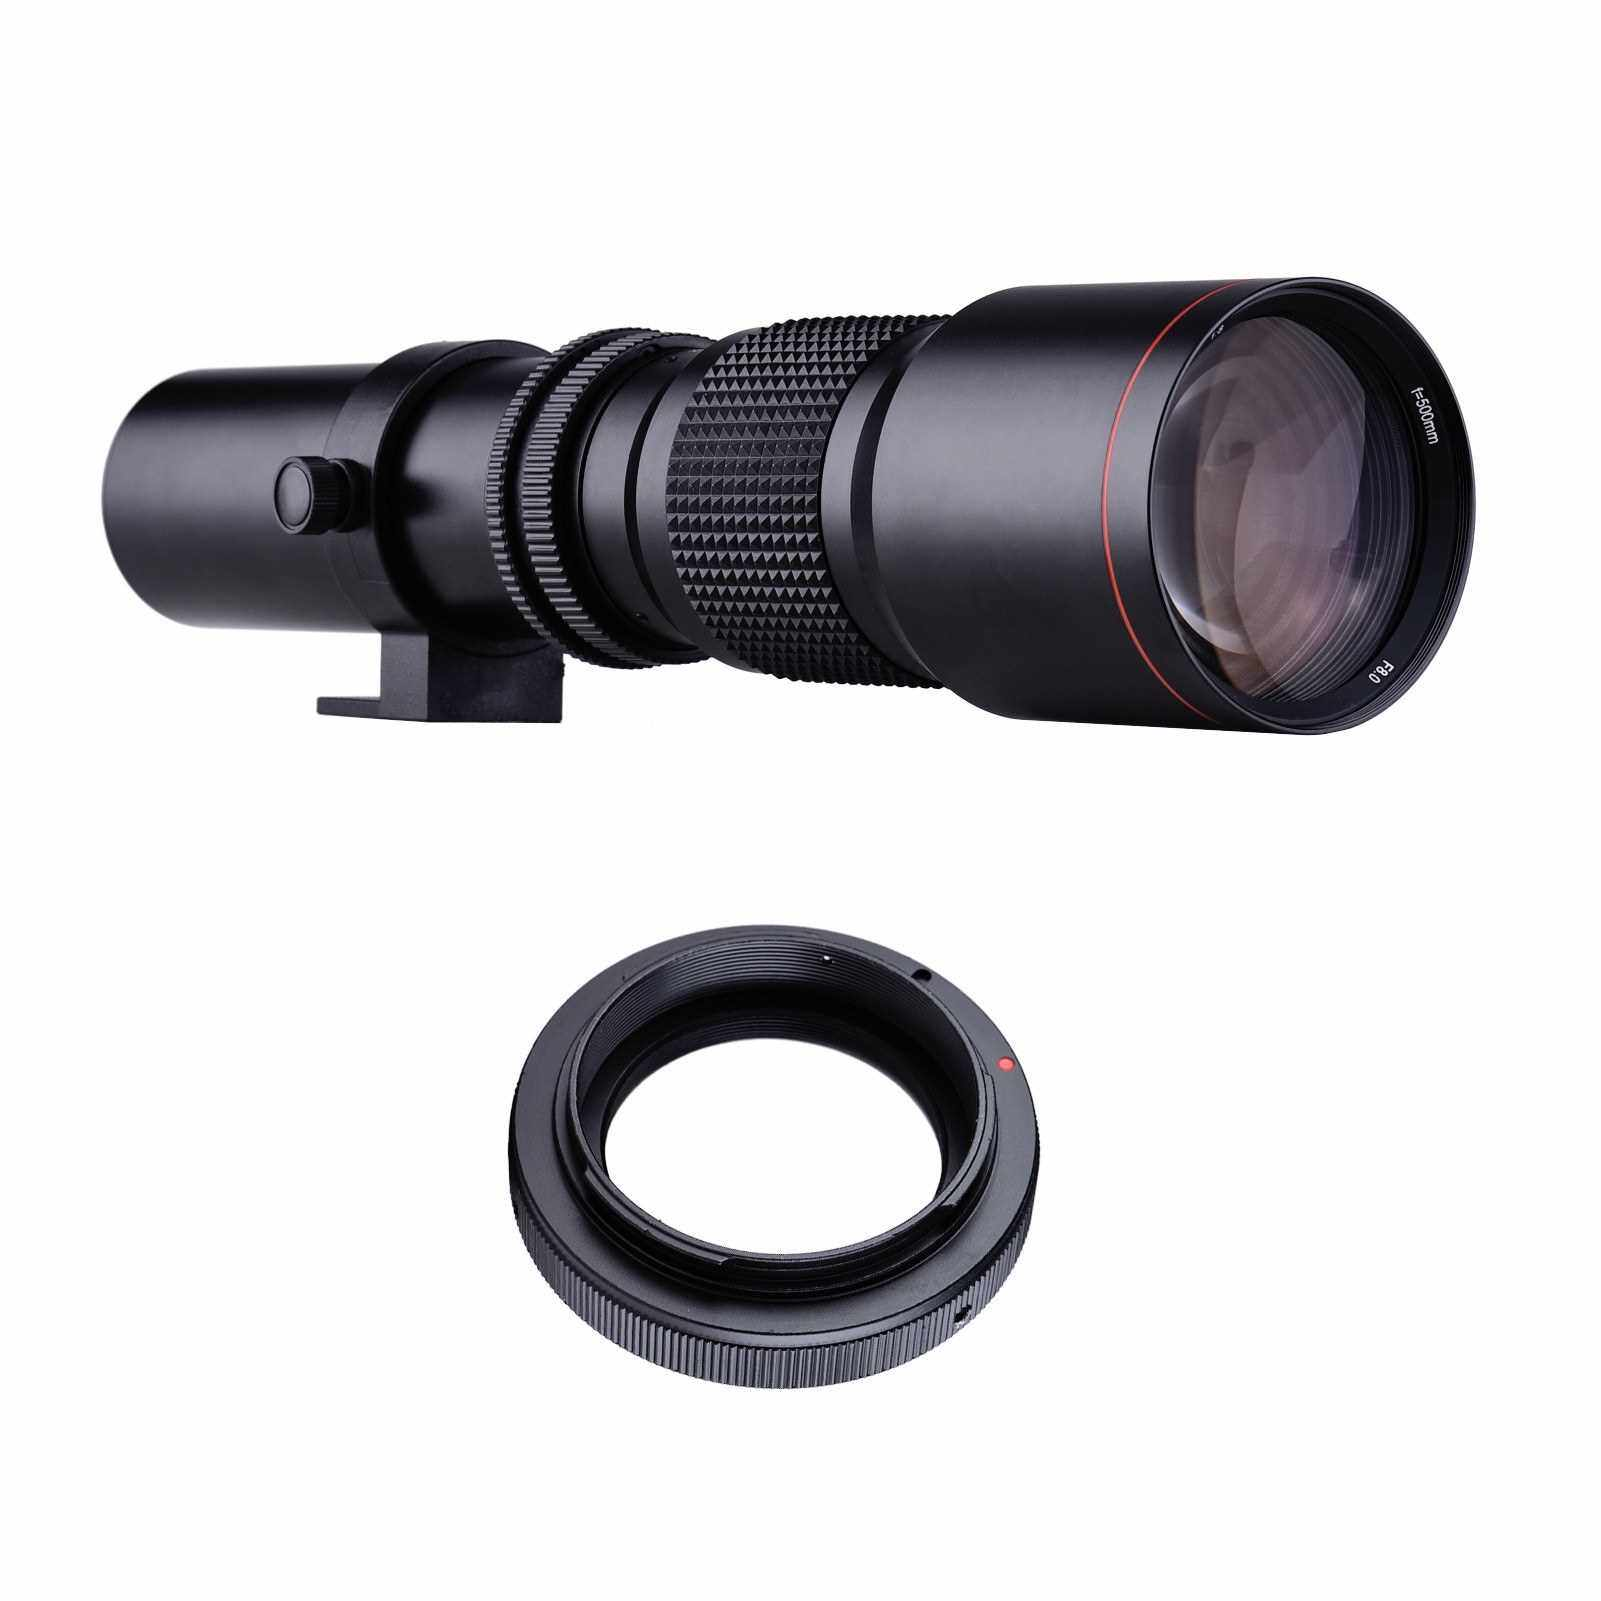 500mm F/8.0-32 Multi Coated Super Telephoto Lens Manual Zoom + T-Mount to EF-Mount Adapter Ring Kit Replacement for Canon EOS Rebel T3 T3i T4i T5 T5i T6 T6i T6s T7 T7i SL1 SL2 6D 7D 60D 70D 77D 80D 5D II/III/IV DSLR Camera (Standard)